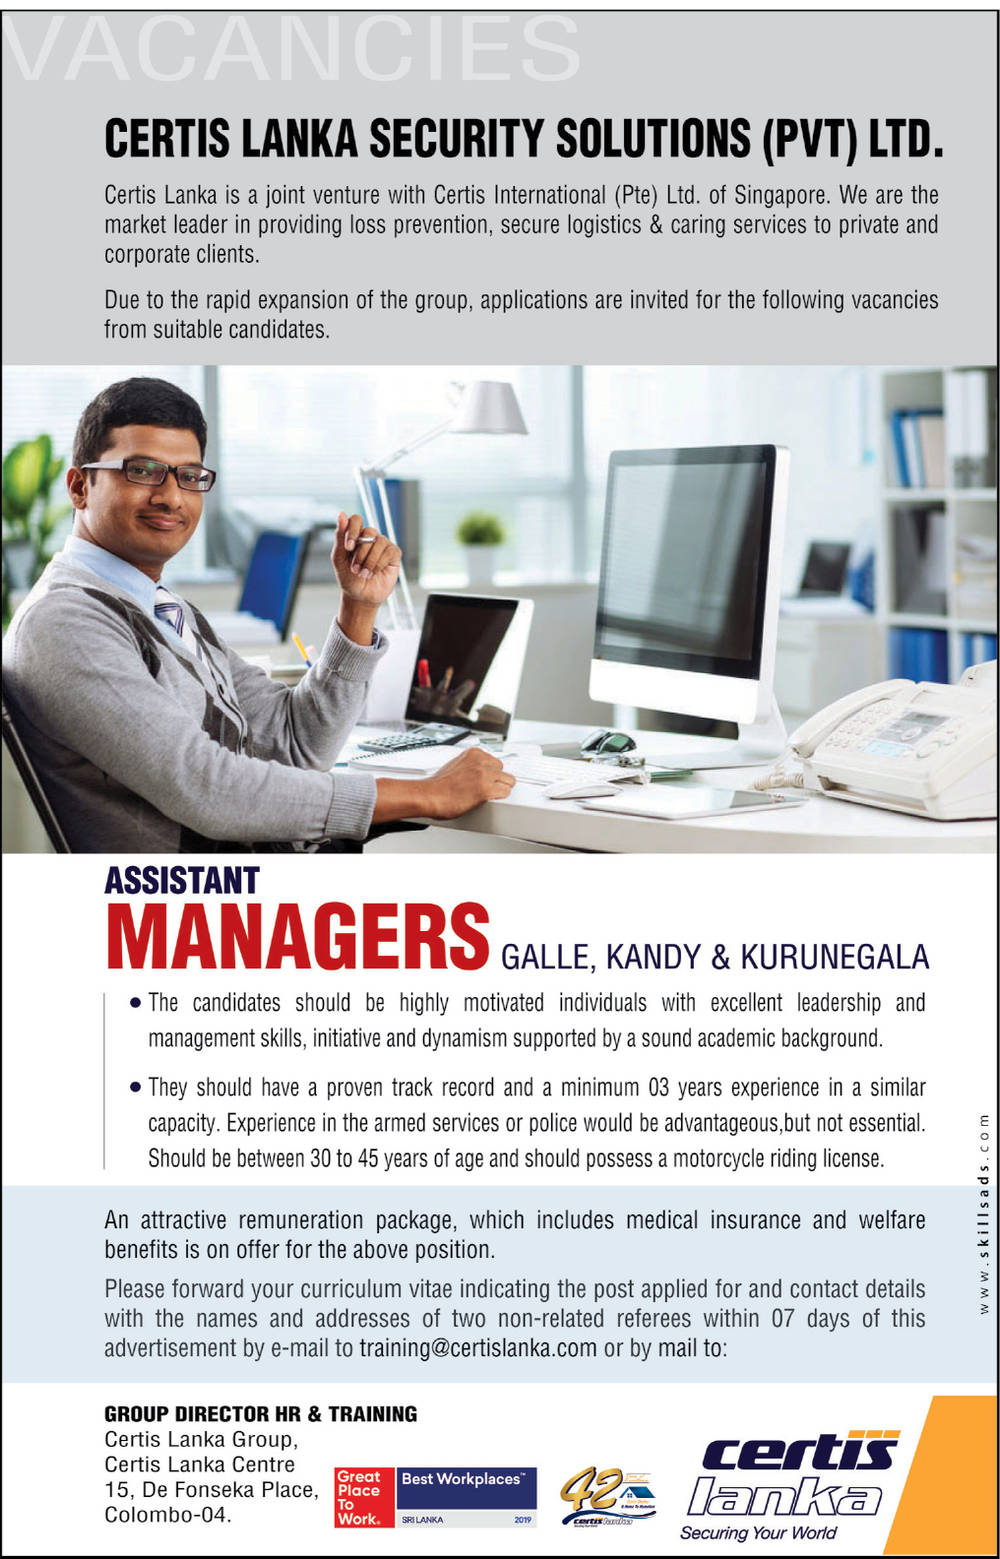 Assistant Managers - Certis Lanka Security Solutions (Pvt) Ltd